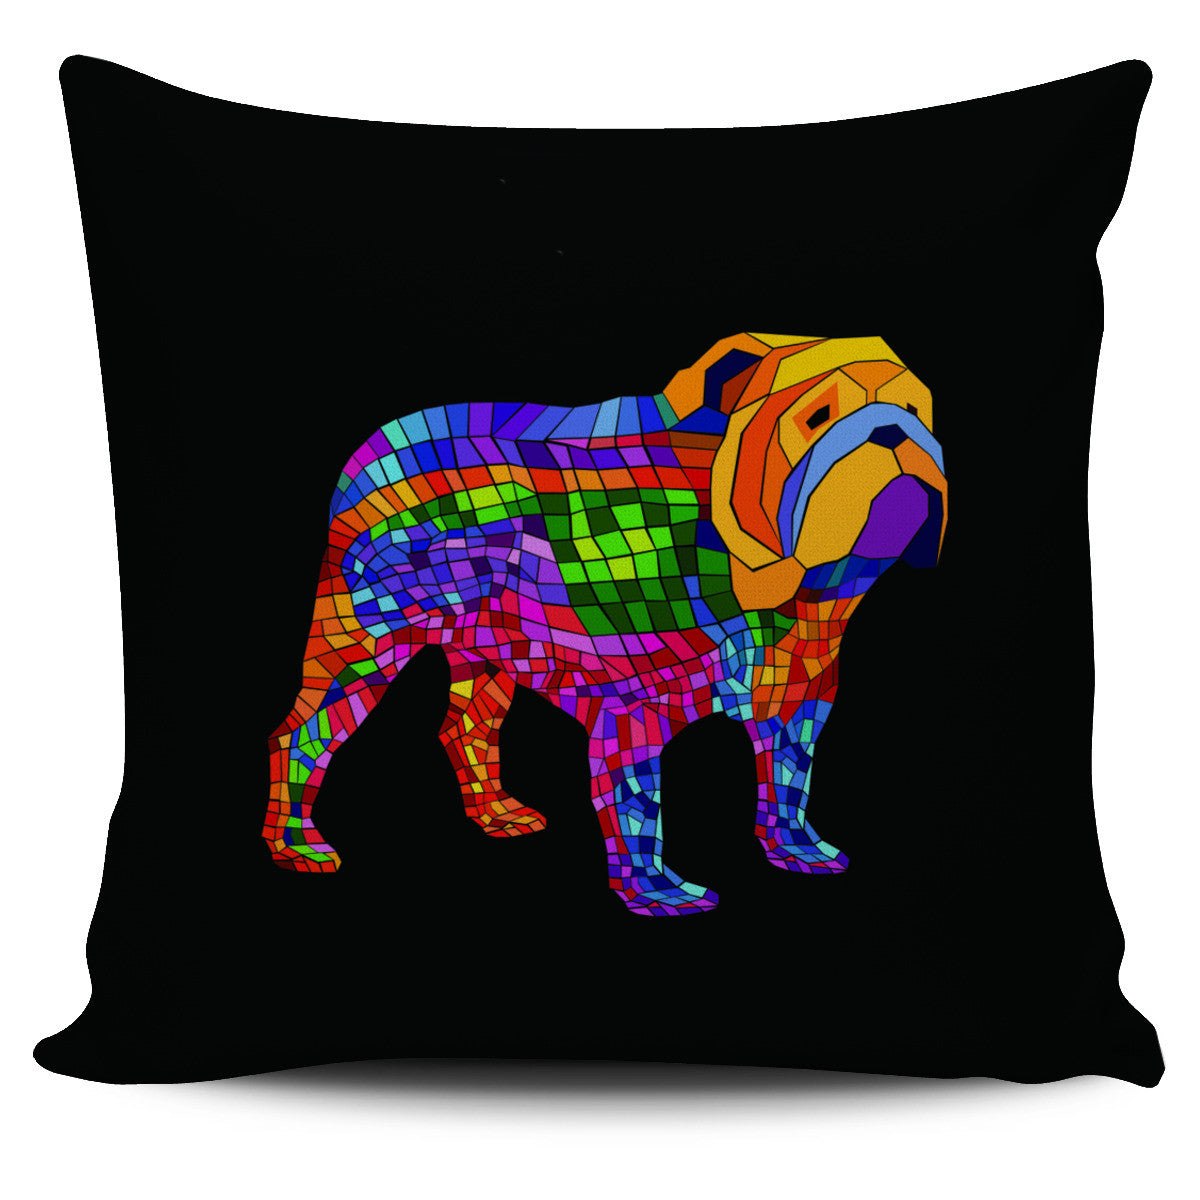 Color Bulldog Pillow Covers Offer